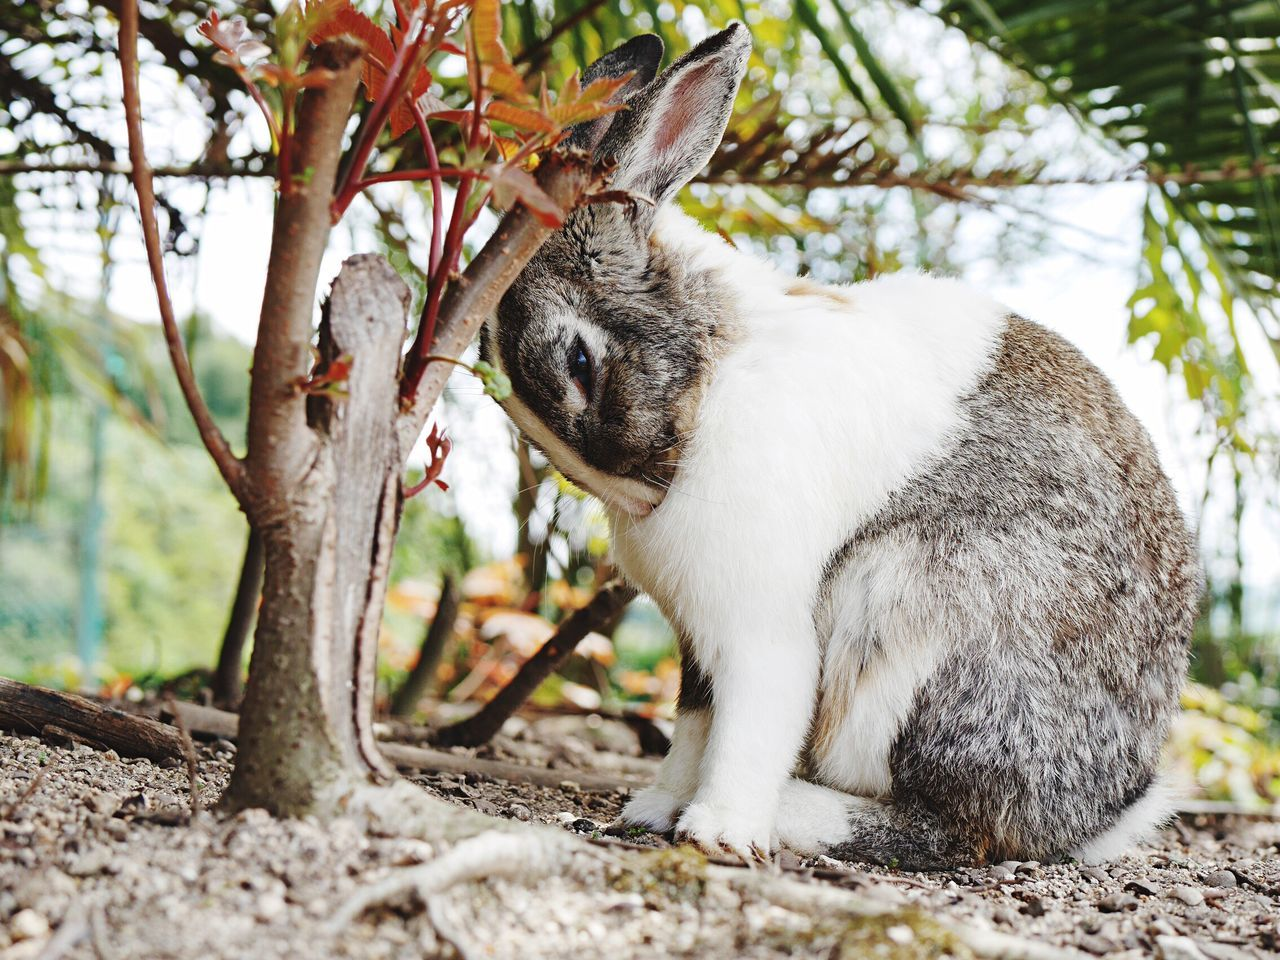 Nature Photography Nature Nature_collection Rabbit ❤️ Beauty In Nature Animal Rabbits Rabbits 🐇 Pretty Animal Wildlife Animal_collection Animal Themes Rabbit Animals Animal Photography Animals In The Wild